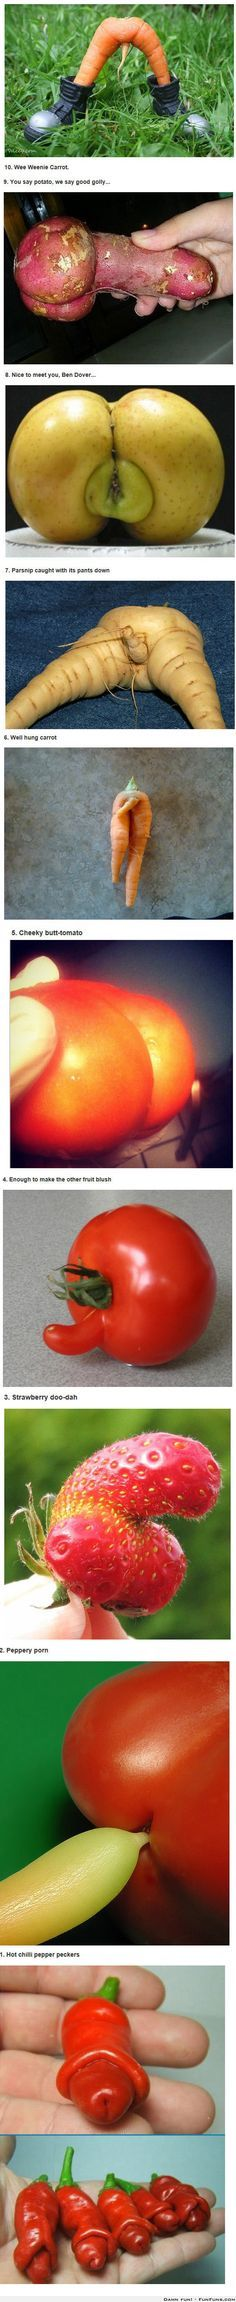 Top 10 Hilarious Pictures Of Fruits And Vegetables Funny Vegetables, Veggies, Funny Fruit, Bizarre, Food Humor, Adult Humor, Funny Posts, The Funny, Mother Nature